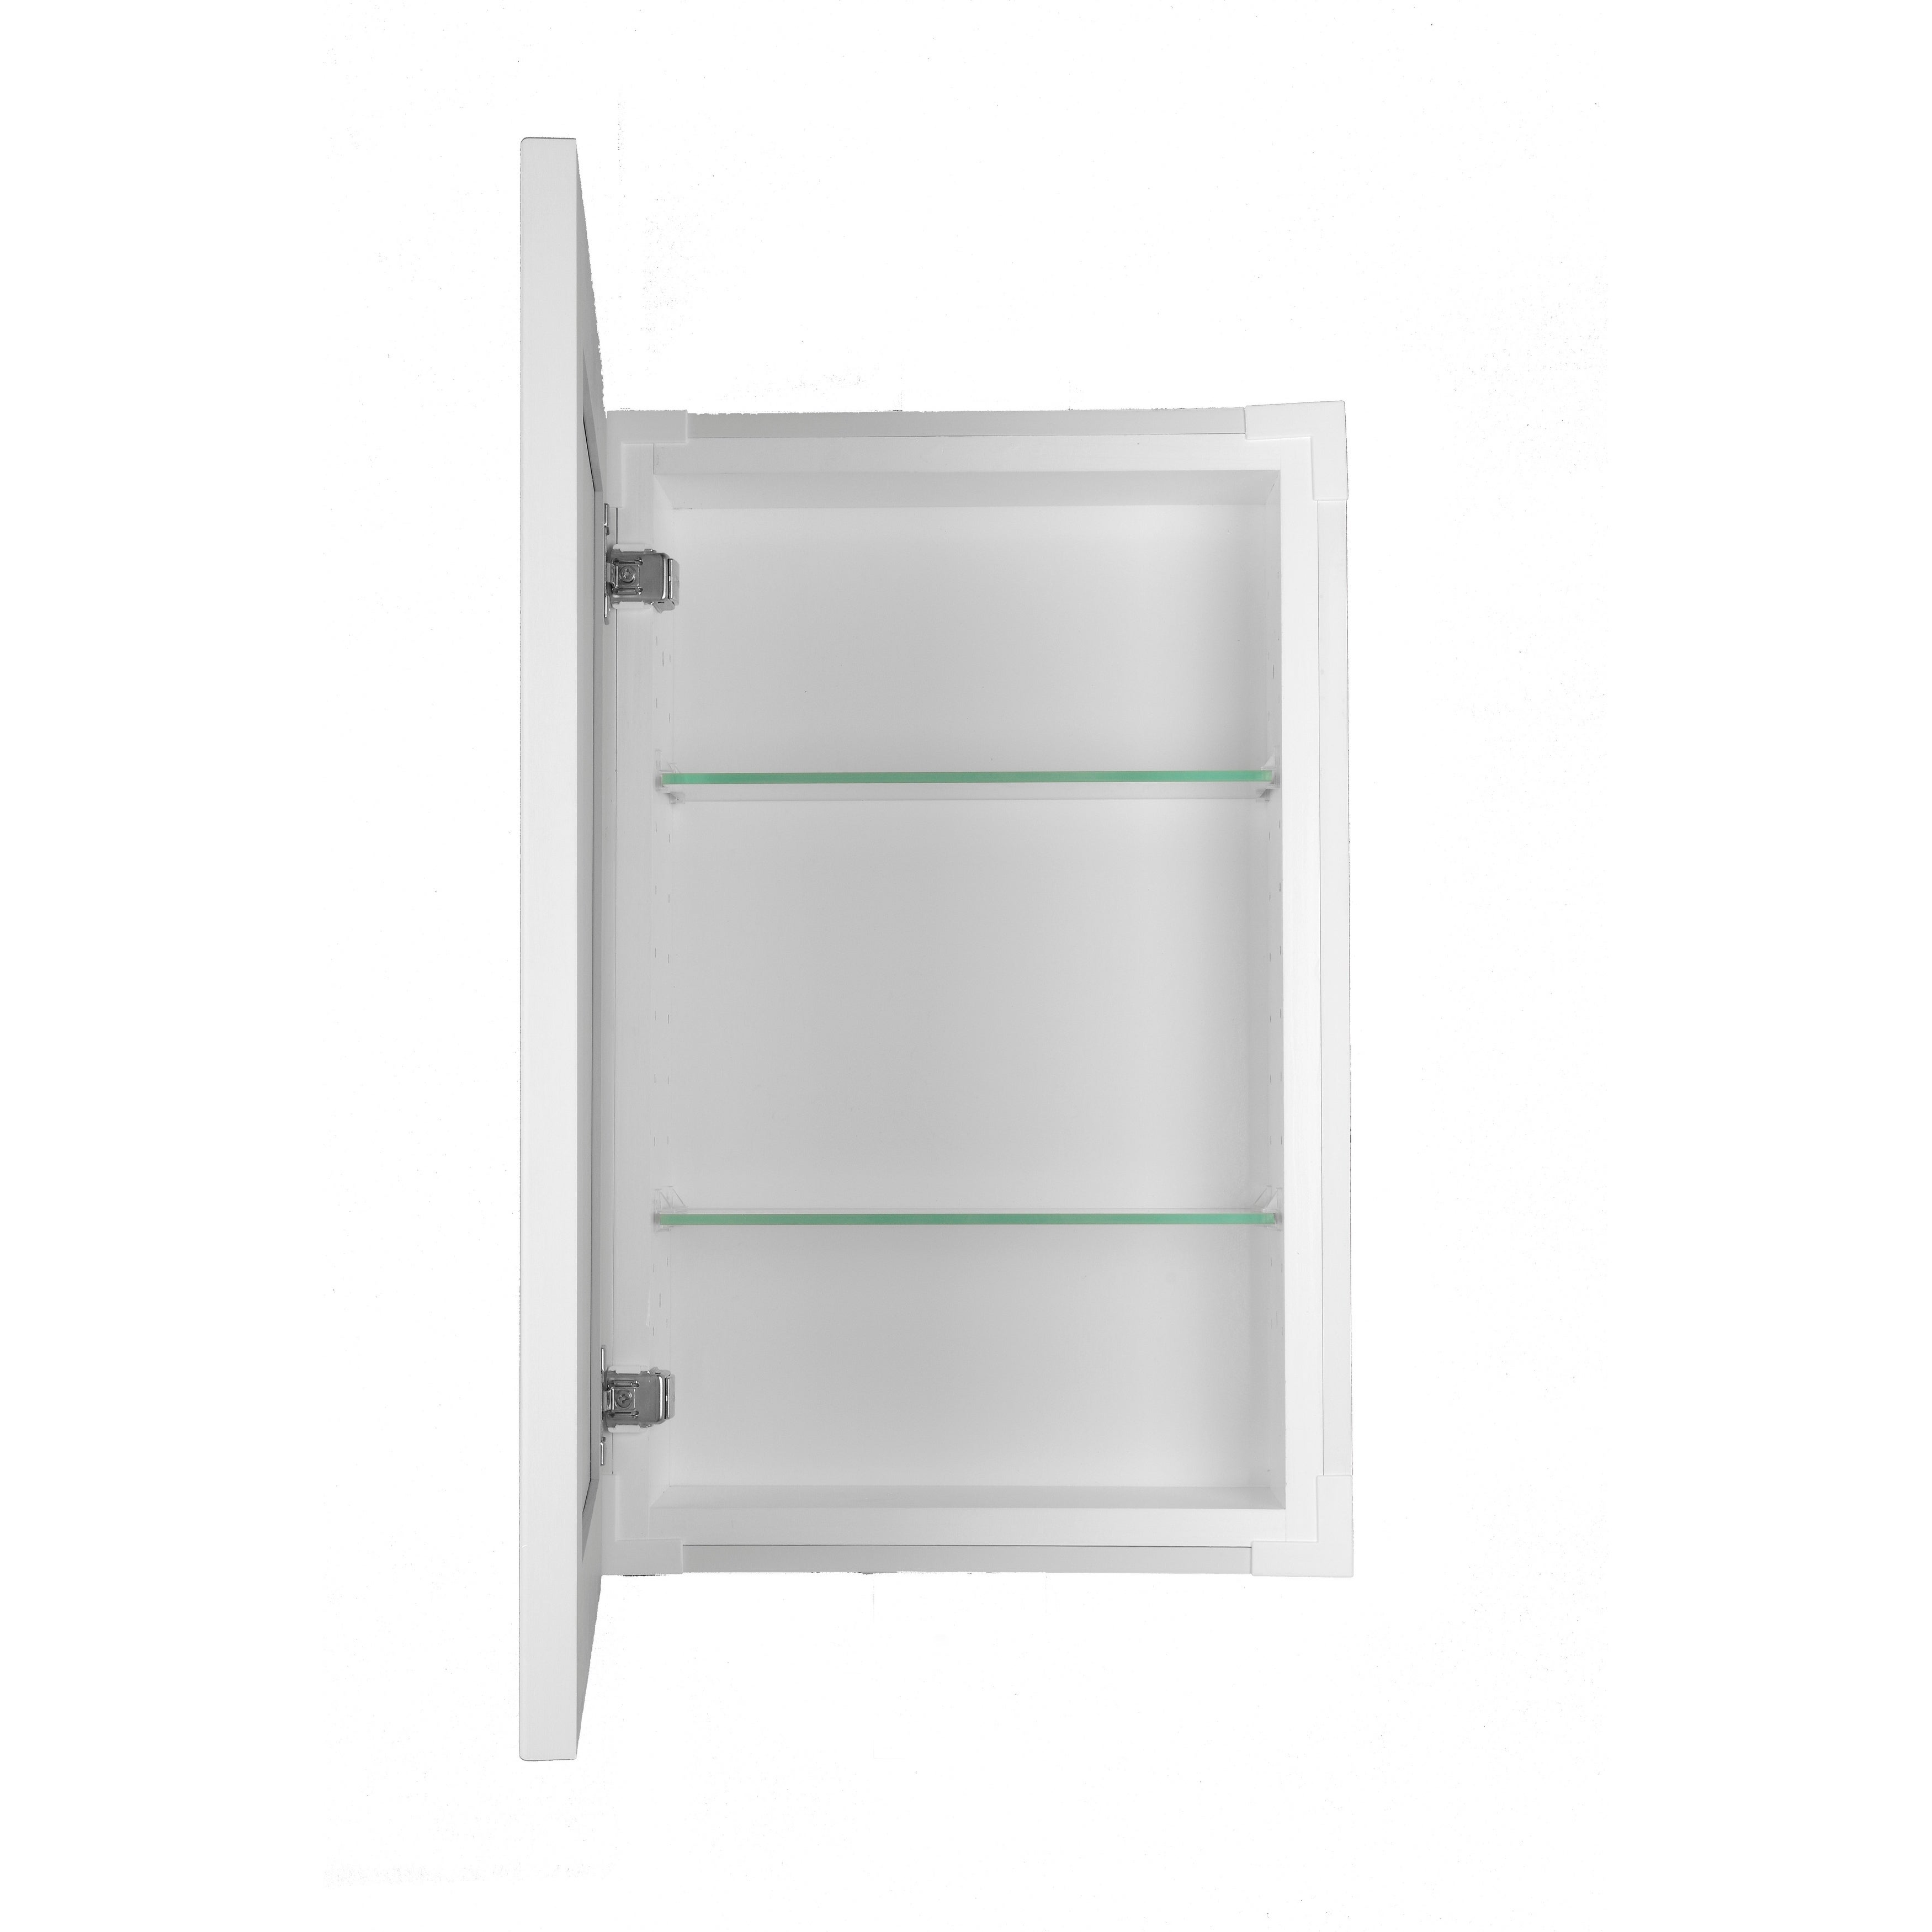 Overstock.com Recessed Standard Depth Classic Frameless Cabinet (18 inches) at Sears.com